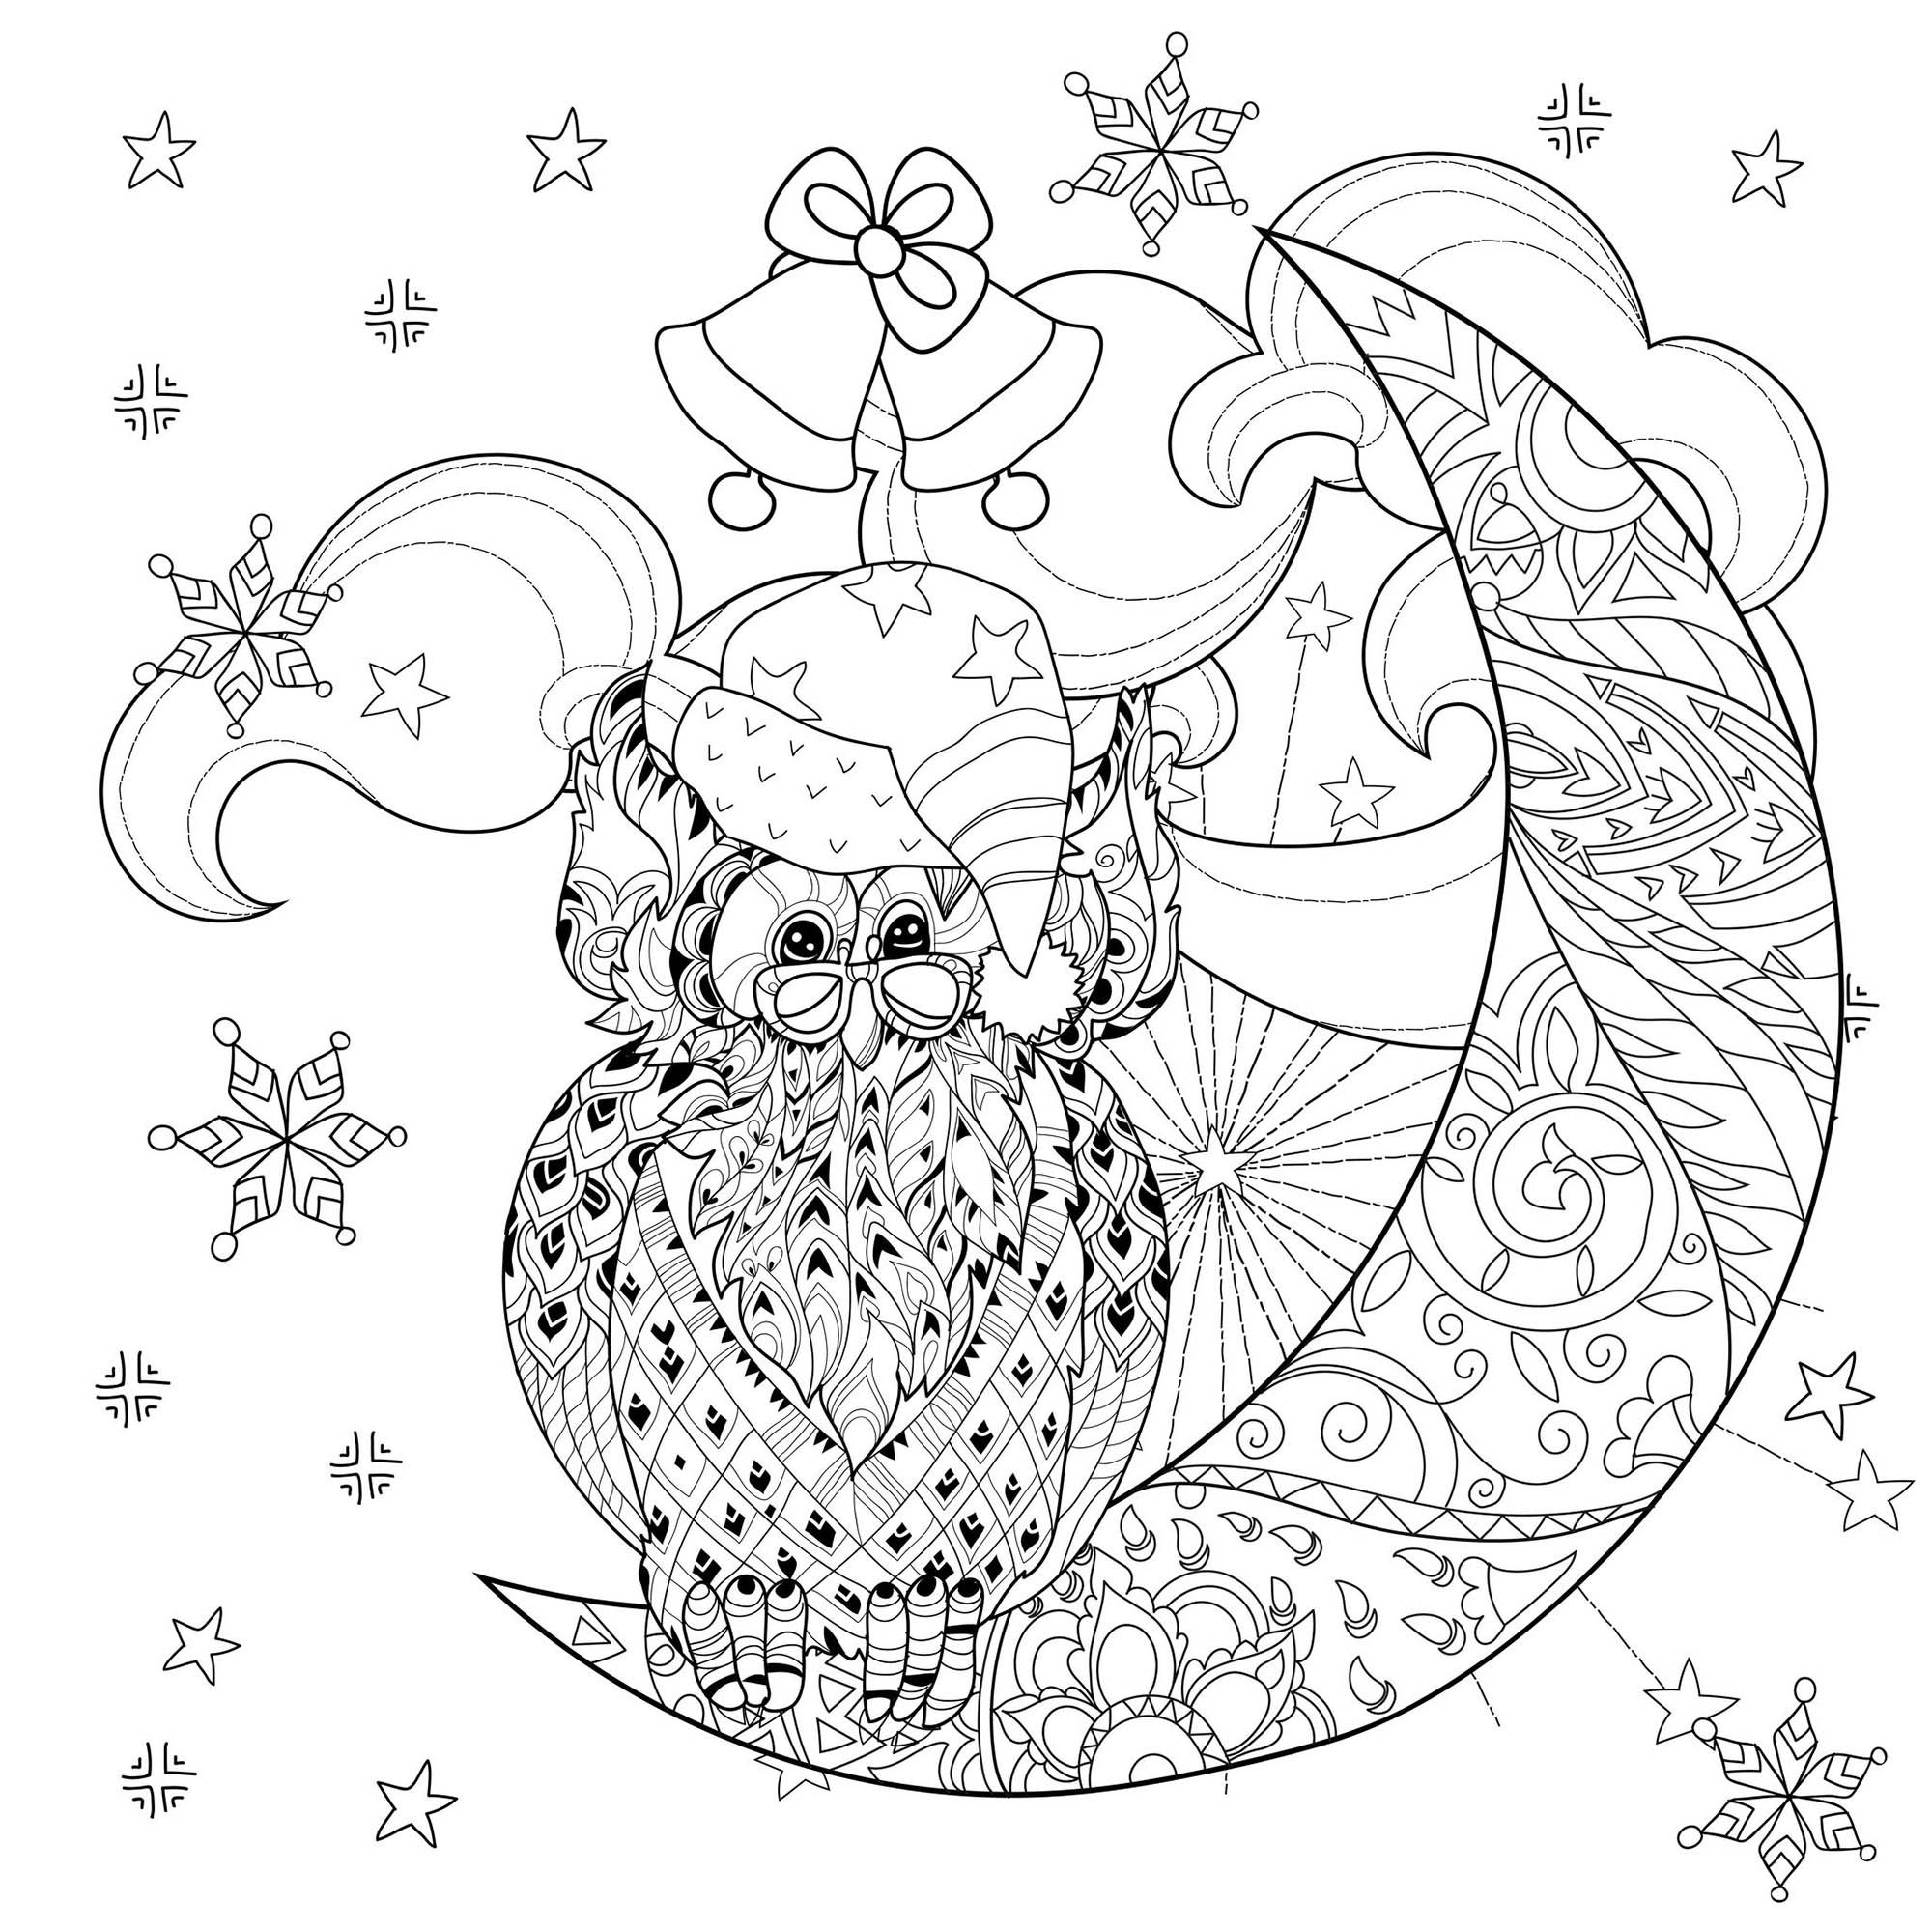 Color This Cartoon Owl With Glasses And Santa Claus Hat Sitting On A Half Moon With Beauti Moon Coloring Pages Anti Stress Coloring Book Stress Coloring Book